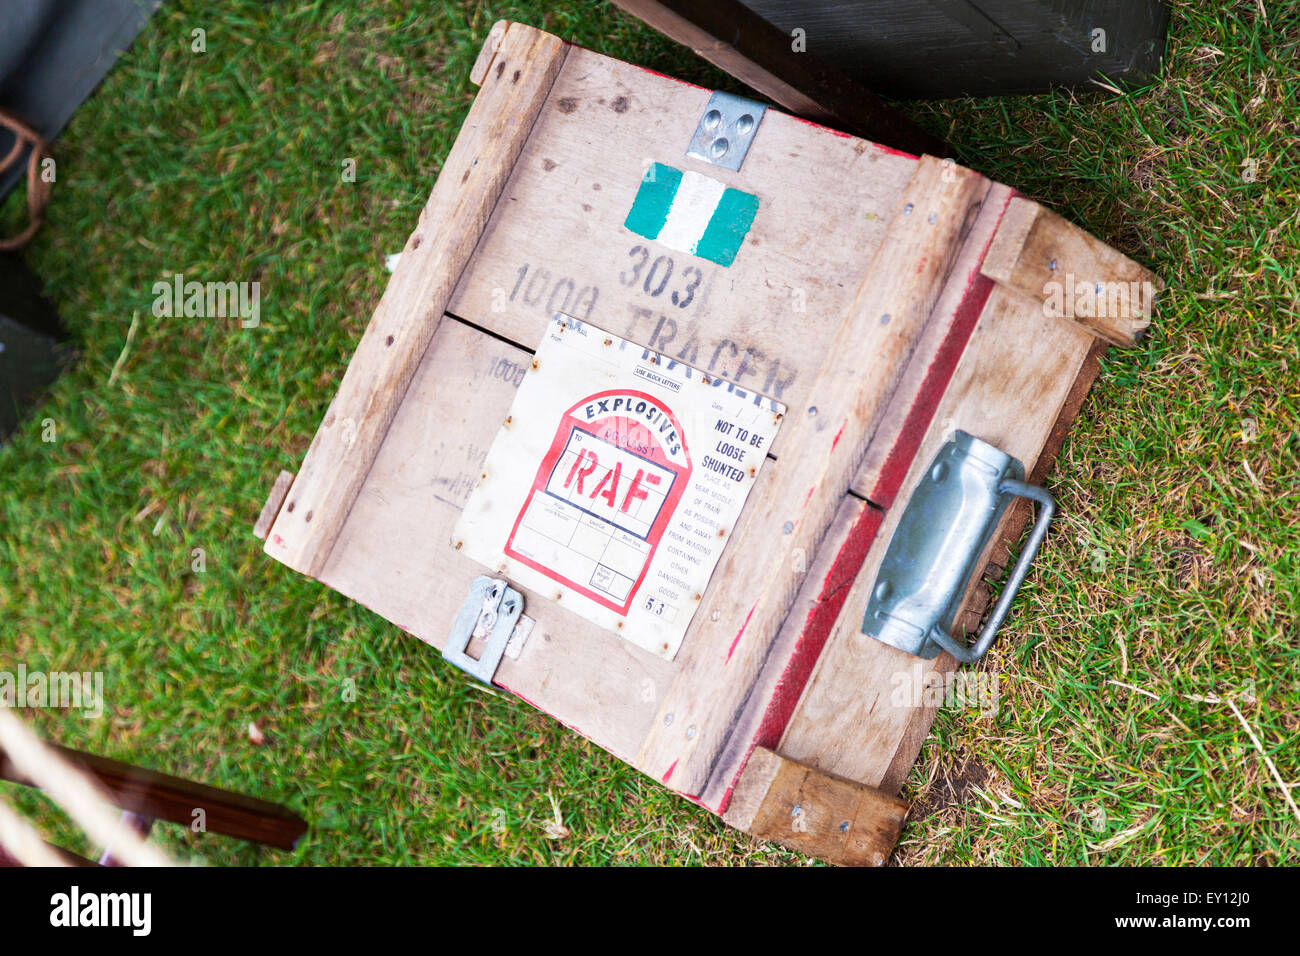 RAF explosives explosive tracer wooden box Credit:  Tommy  (Louth)/Alamy Live News - Stock Image